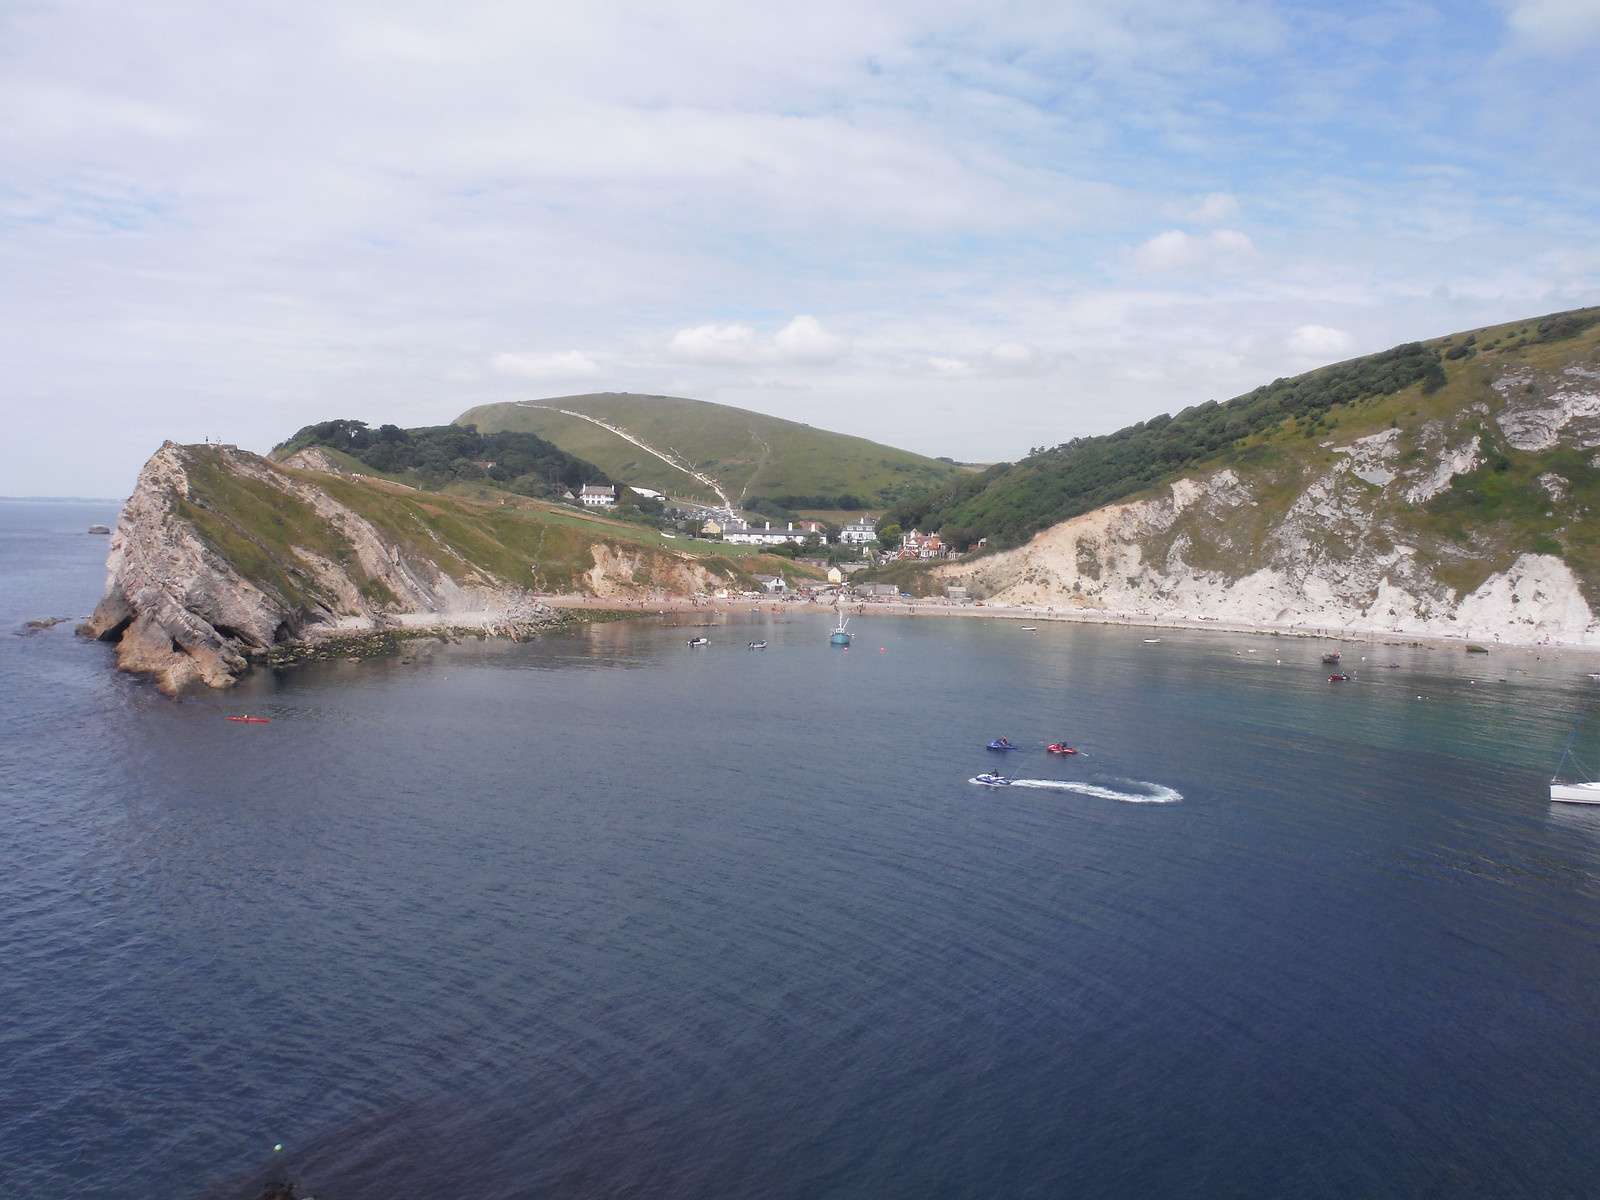 Lulworth Cove and Hambury Tout, from East Point SWC Walk 54 - Lulworth Cove Circular (via Tyneham and Durdle Door)